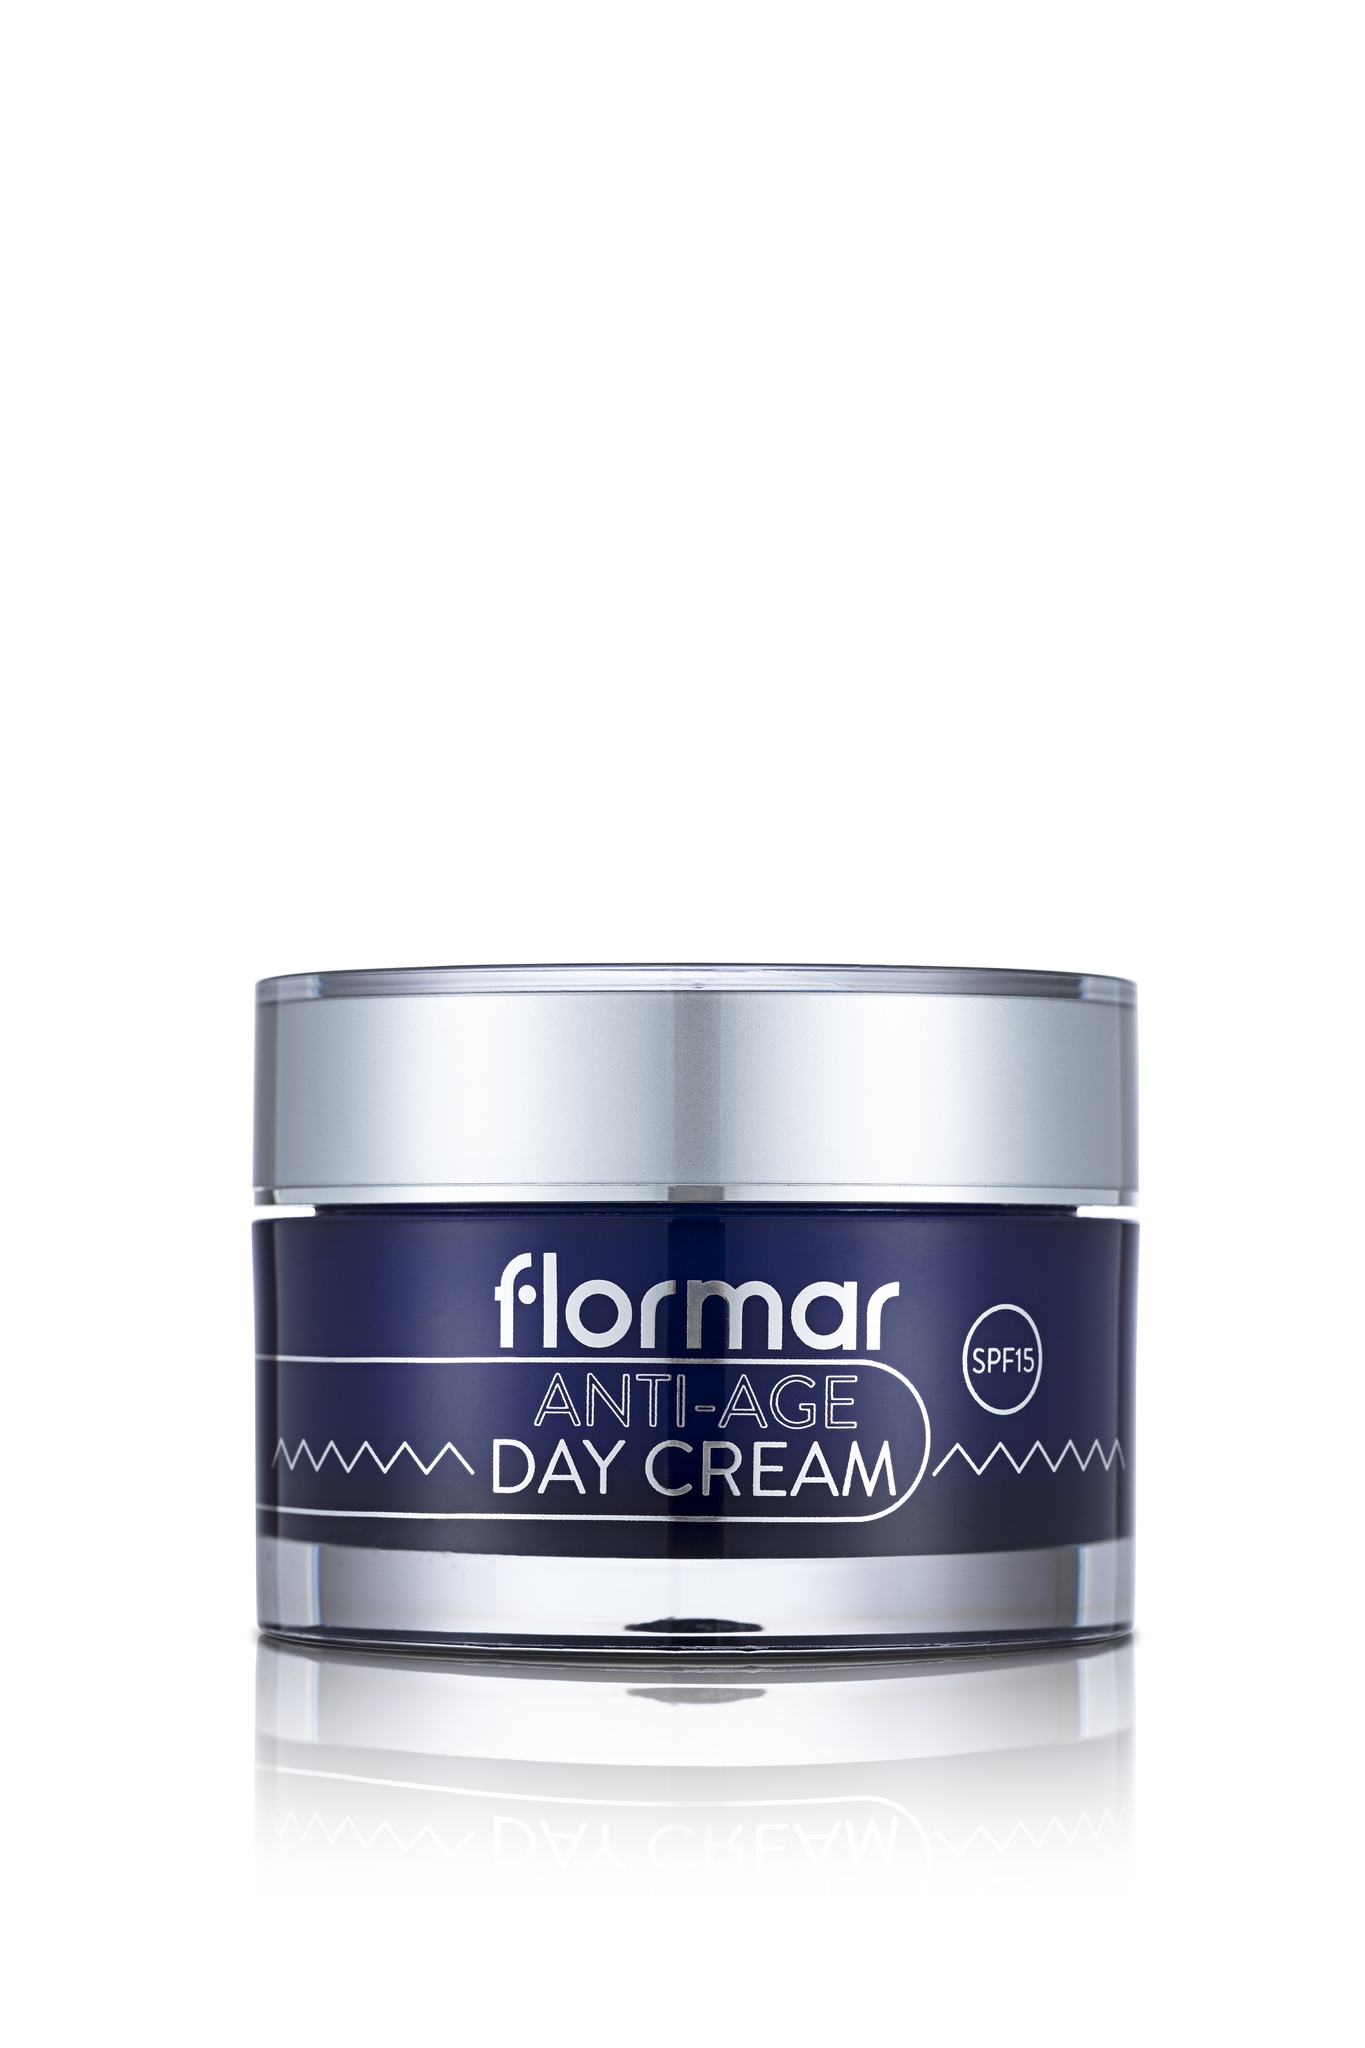 FLORMAR | Anti-Age Day Cream